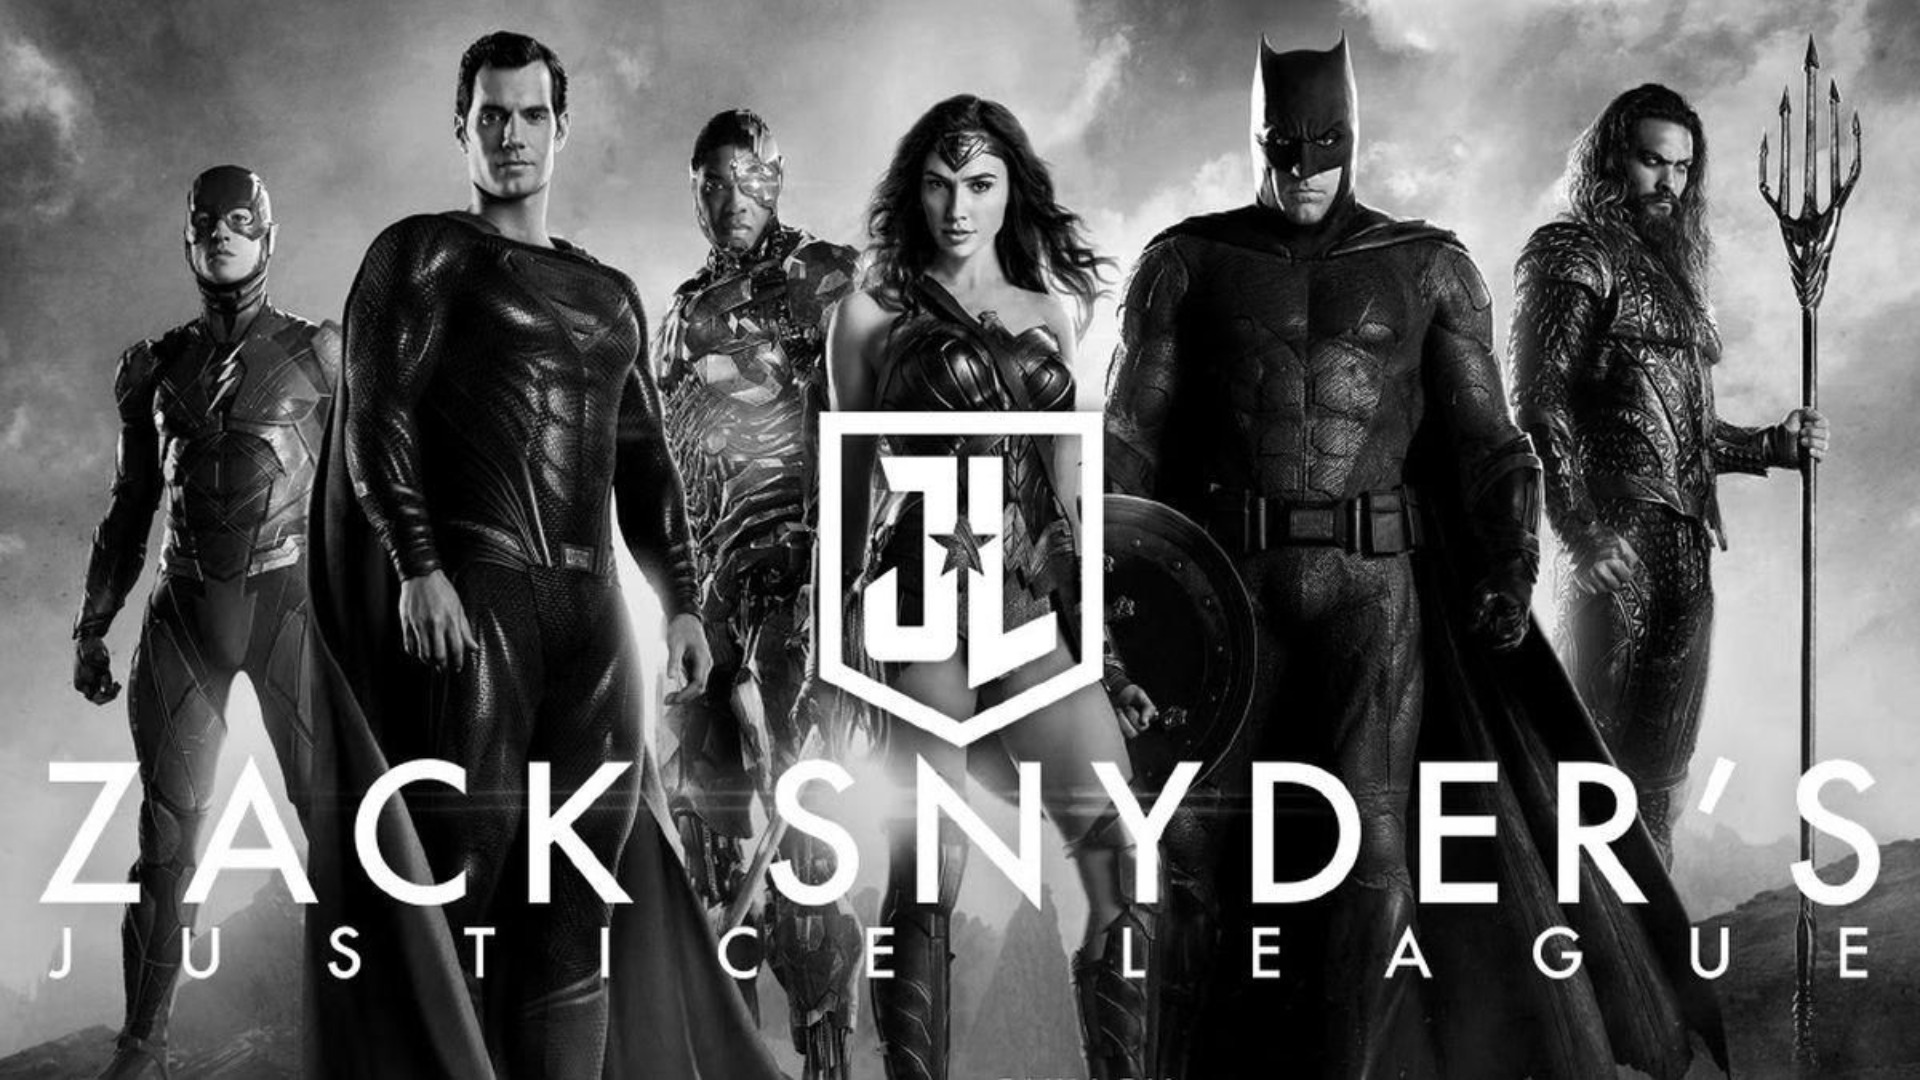 Justice League Snyder Cut Released And Trends All Weekend — Fans Want The DC Snyderverse To Continue